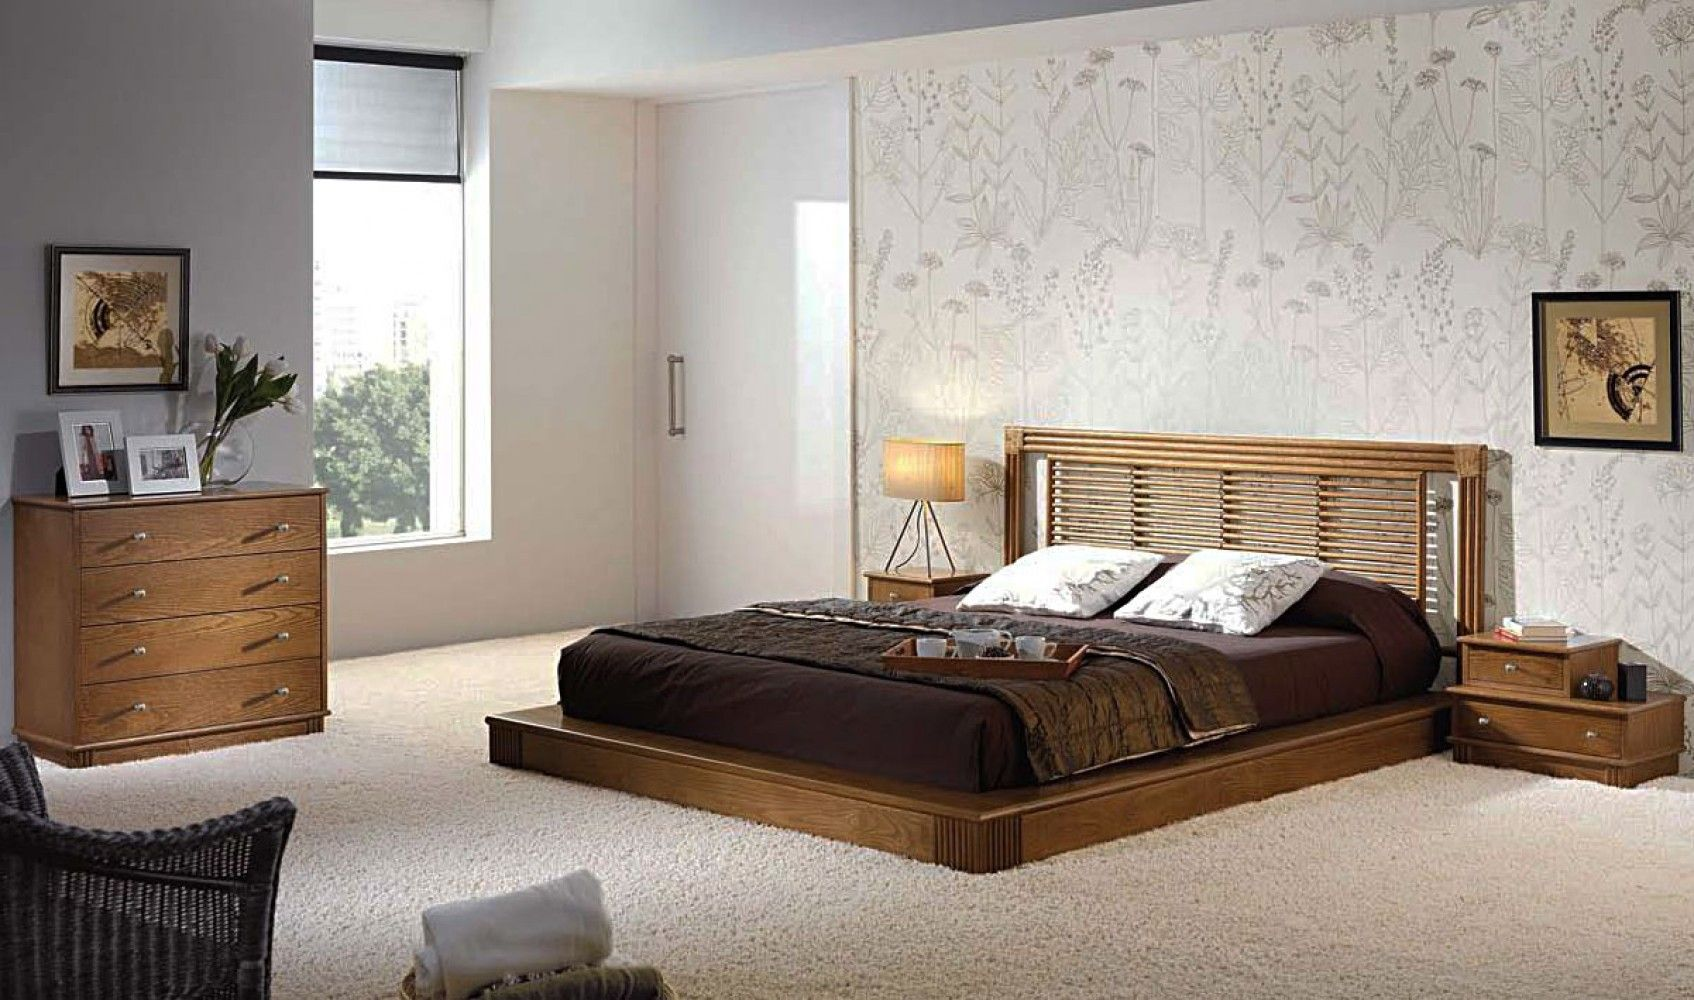 Modele Chambre A Coucher Beautiful De Moderne 2 Photos Concept